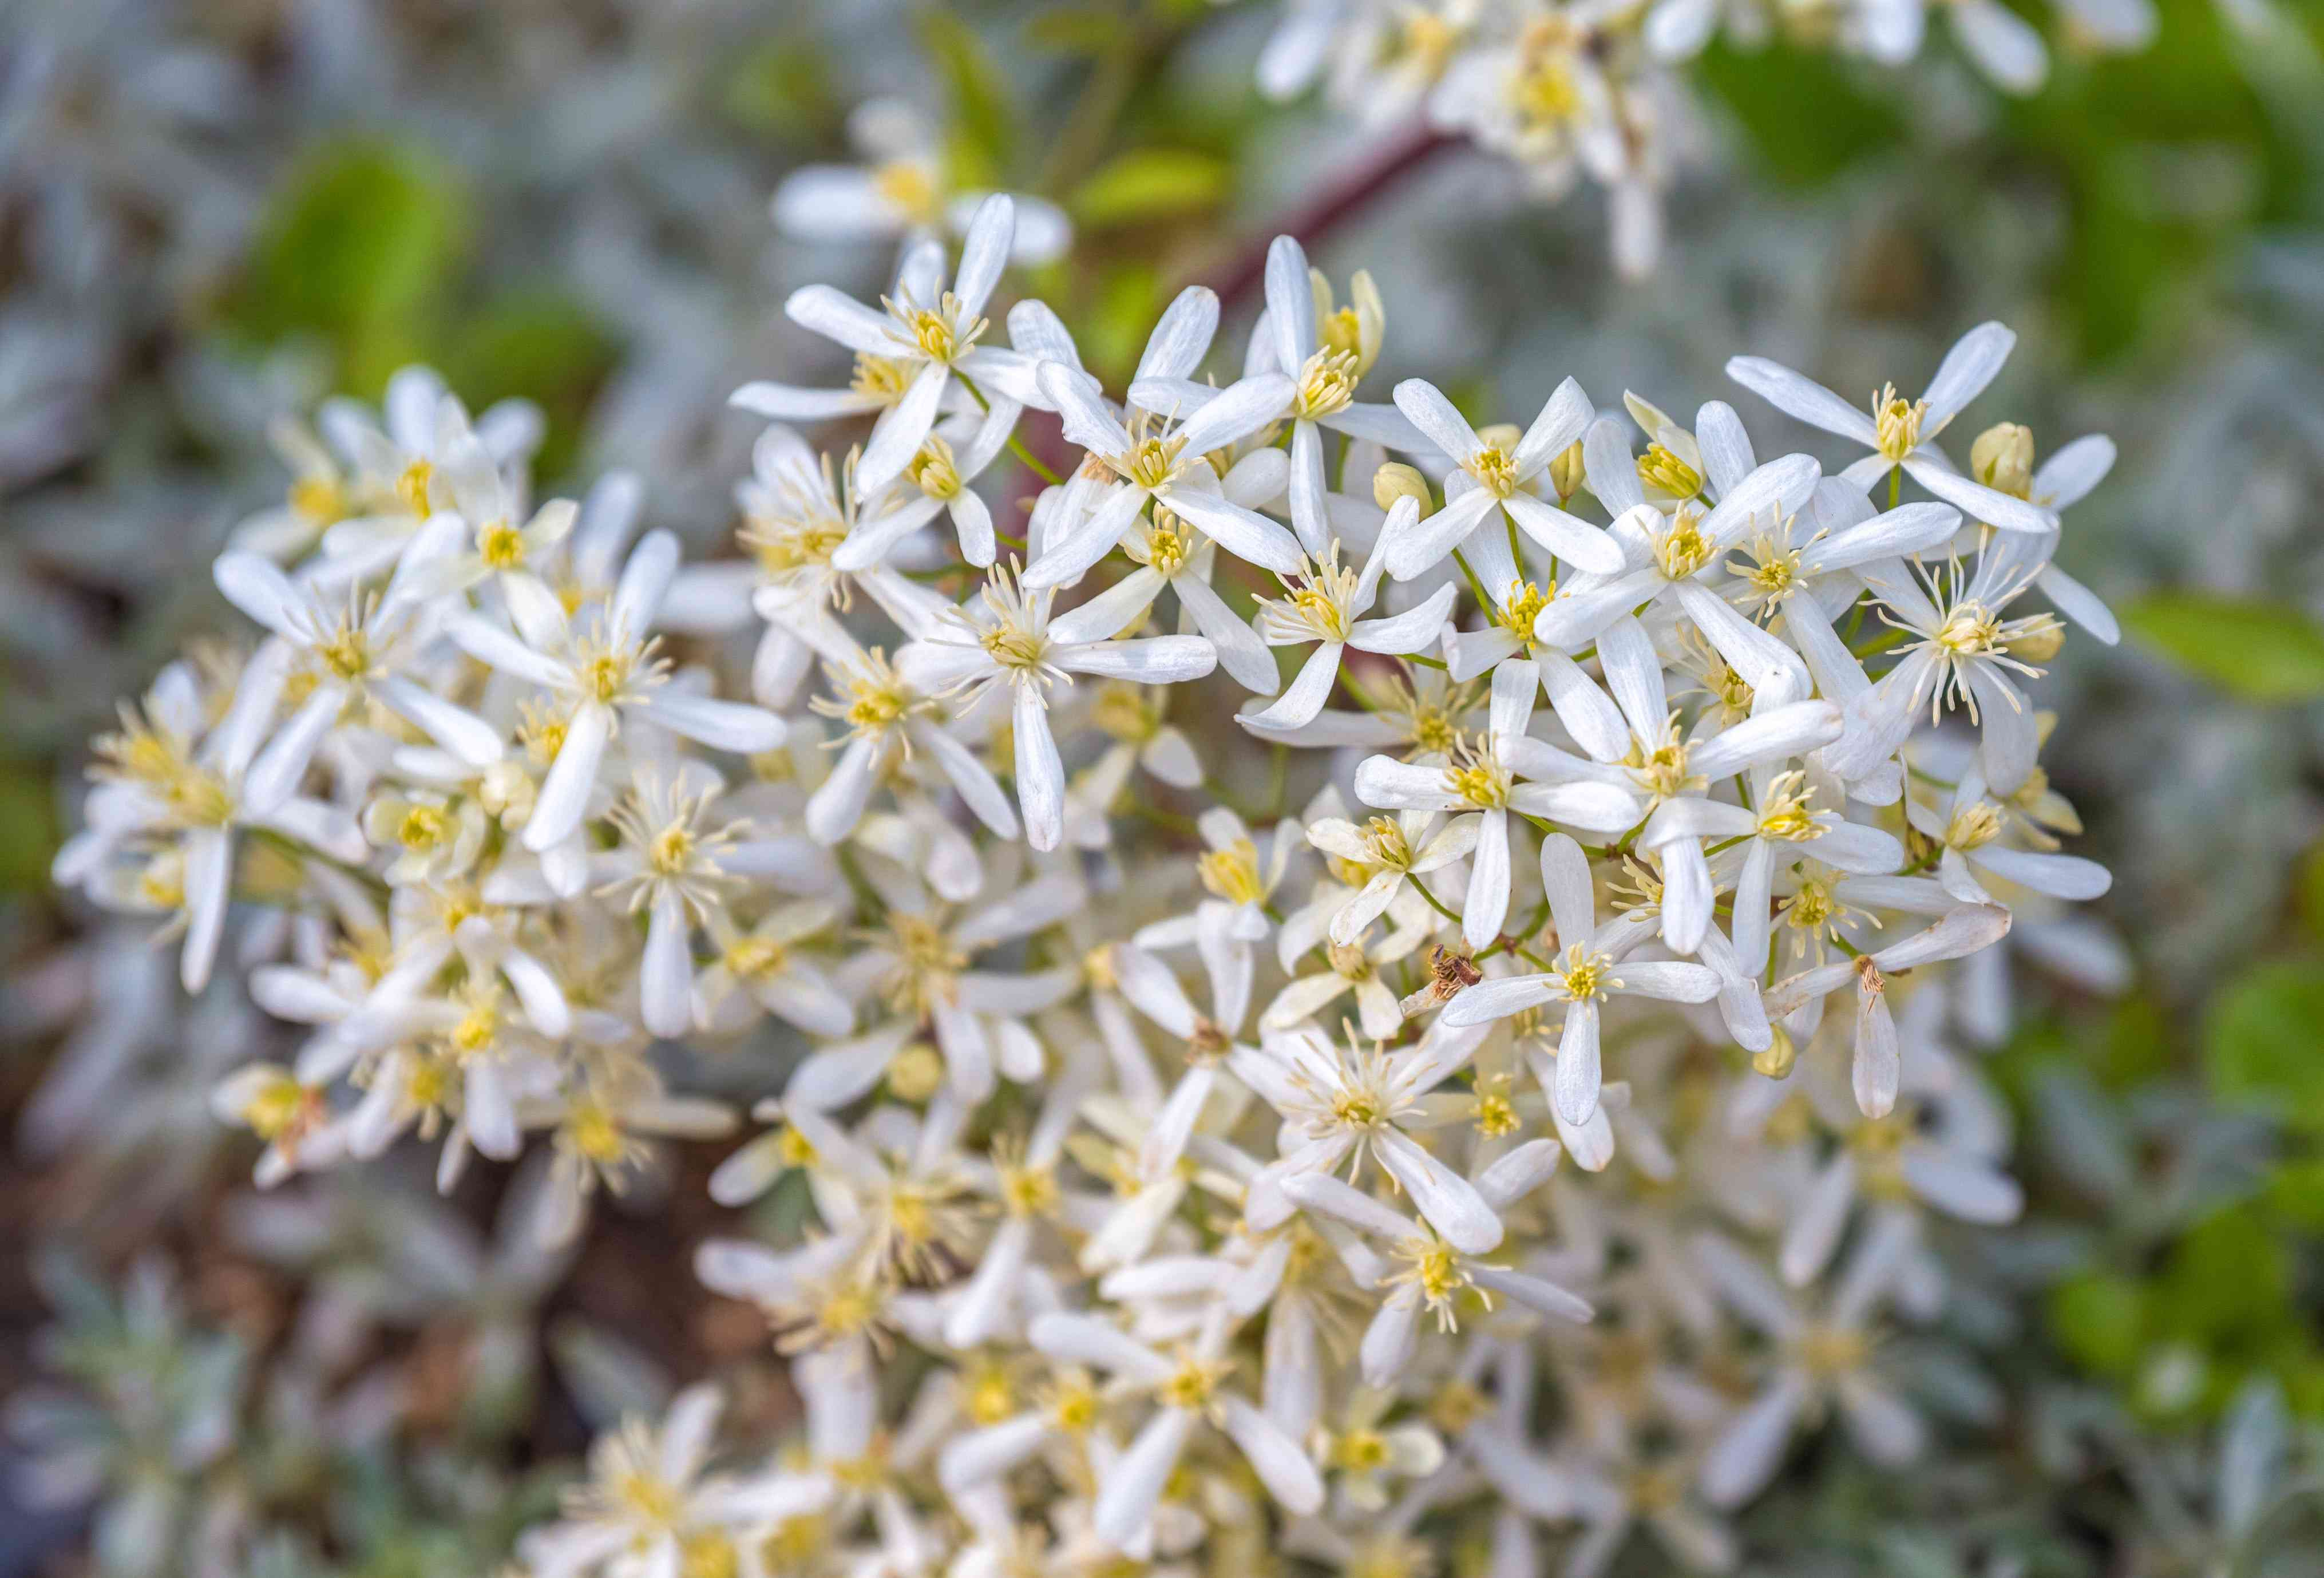 Swet autumn clemantis plant with tiny white flowers clustered together closeup